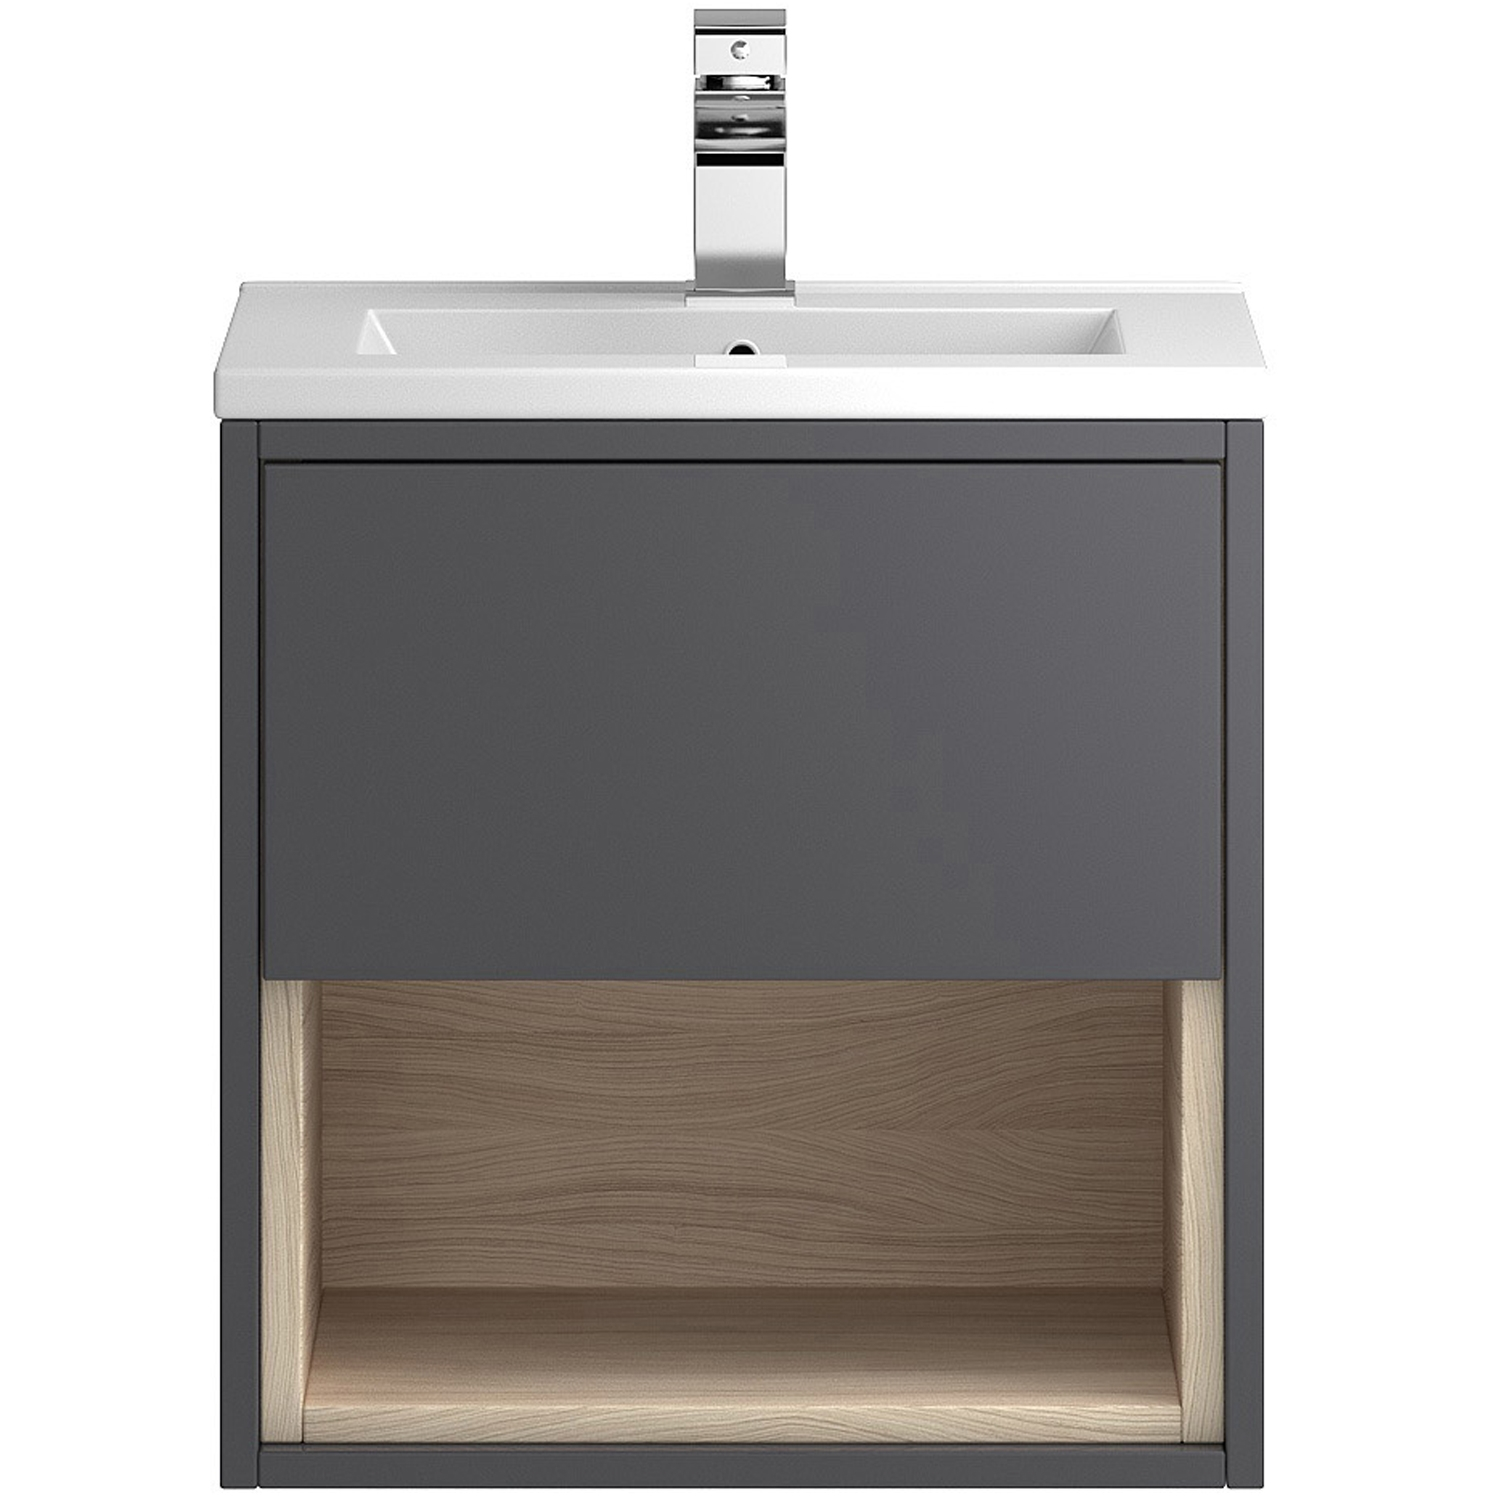 https://www.mepstock.co.uk/admin/images/hudson-reed_grey-basin1-500mm_cabinet_wall-hung-CST884E.jpg